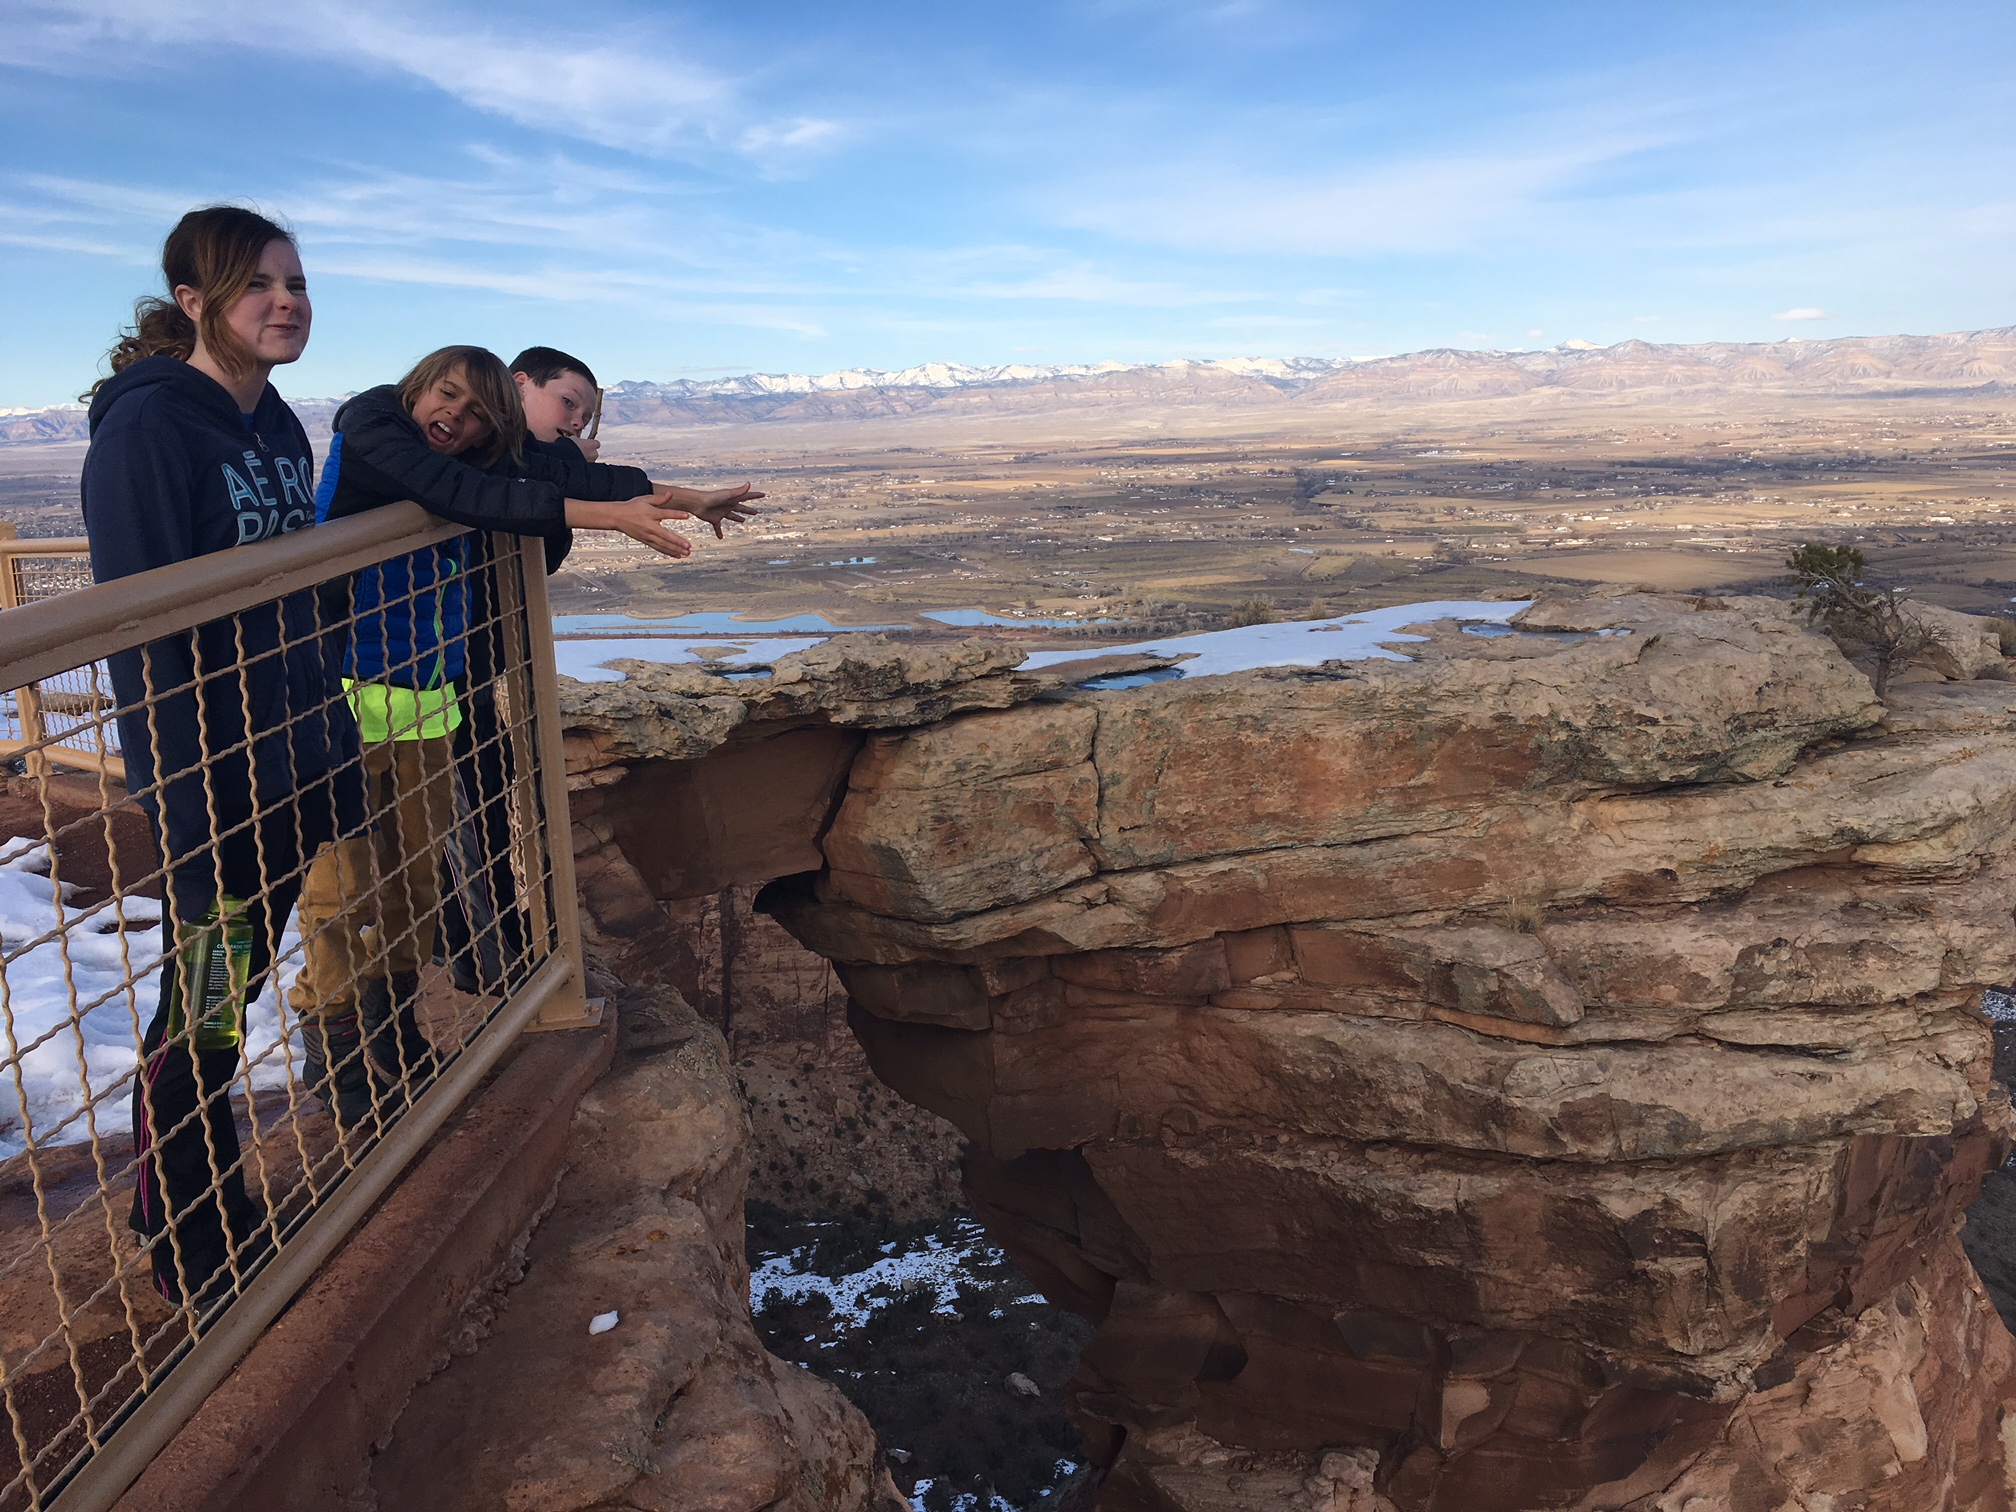 kids at window rock viewpoint looking down into wedding and lizard canyons in winter